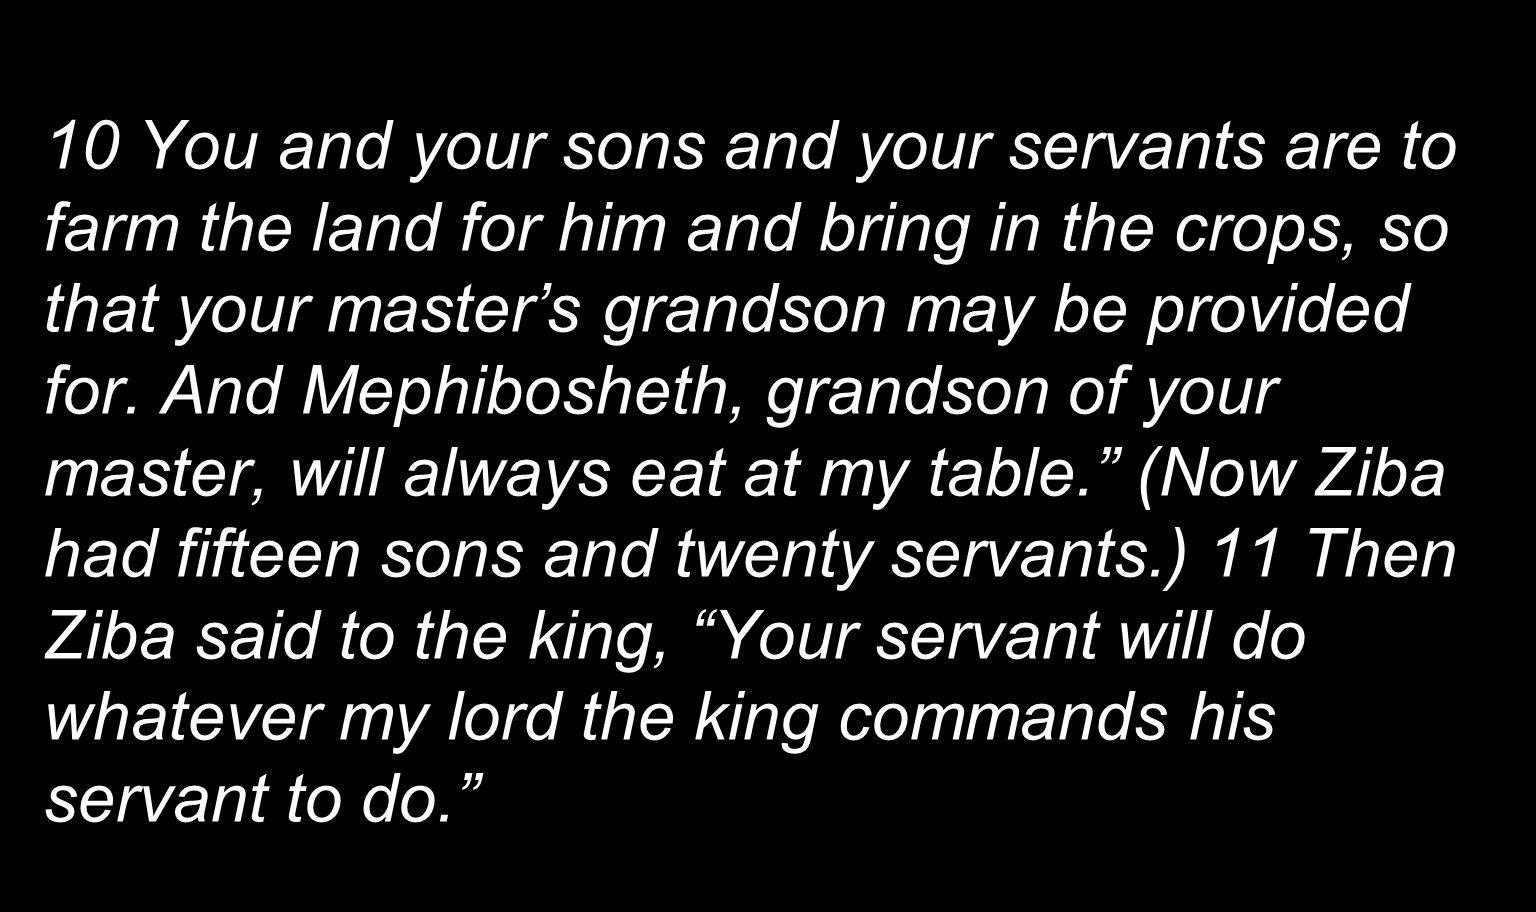 10 You and your sons and your servants are to farm the land for him and bring in the crops, so that your masters grandson may be provided for. And Mep